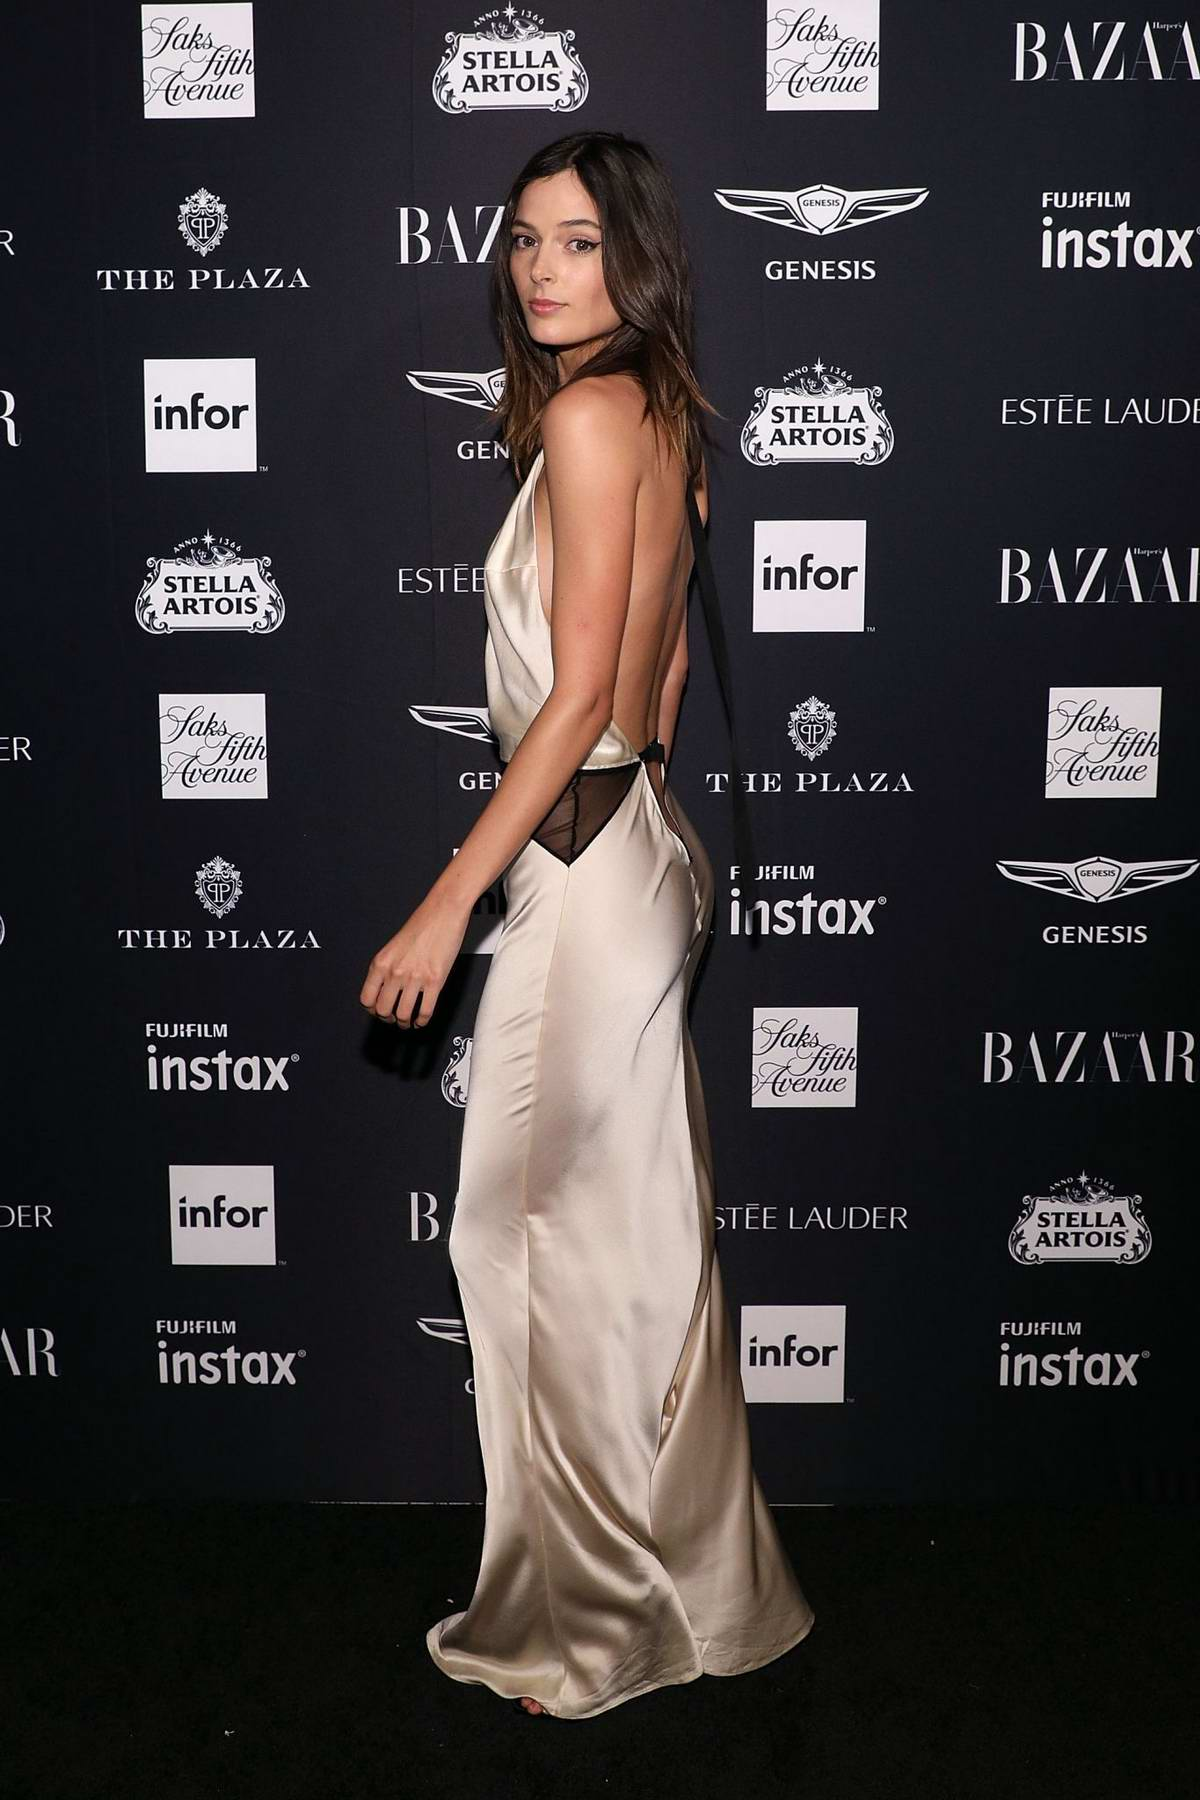 sadie newman attends harper's bazaar icons party nyfw spring-summer 2019 in new york city-070918_2